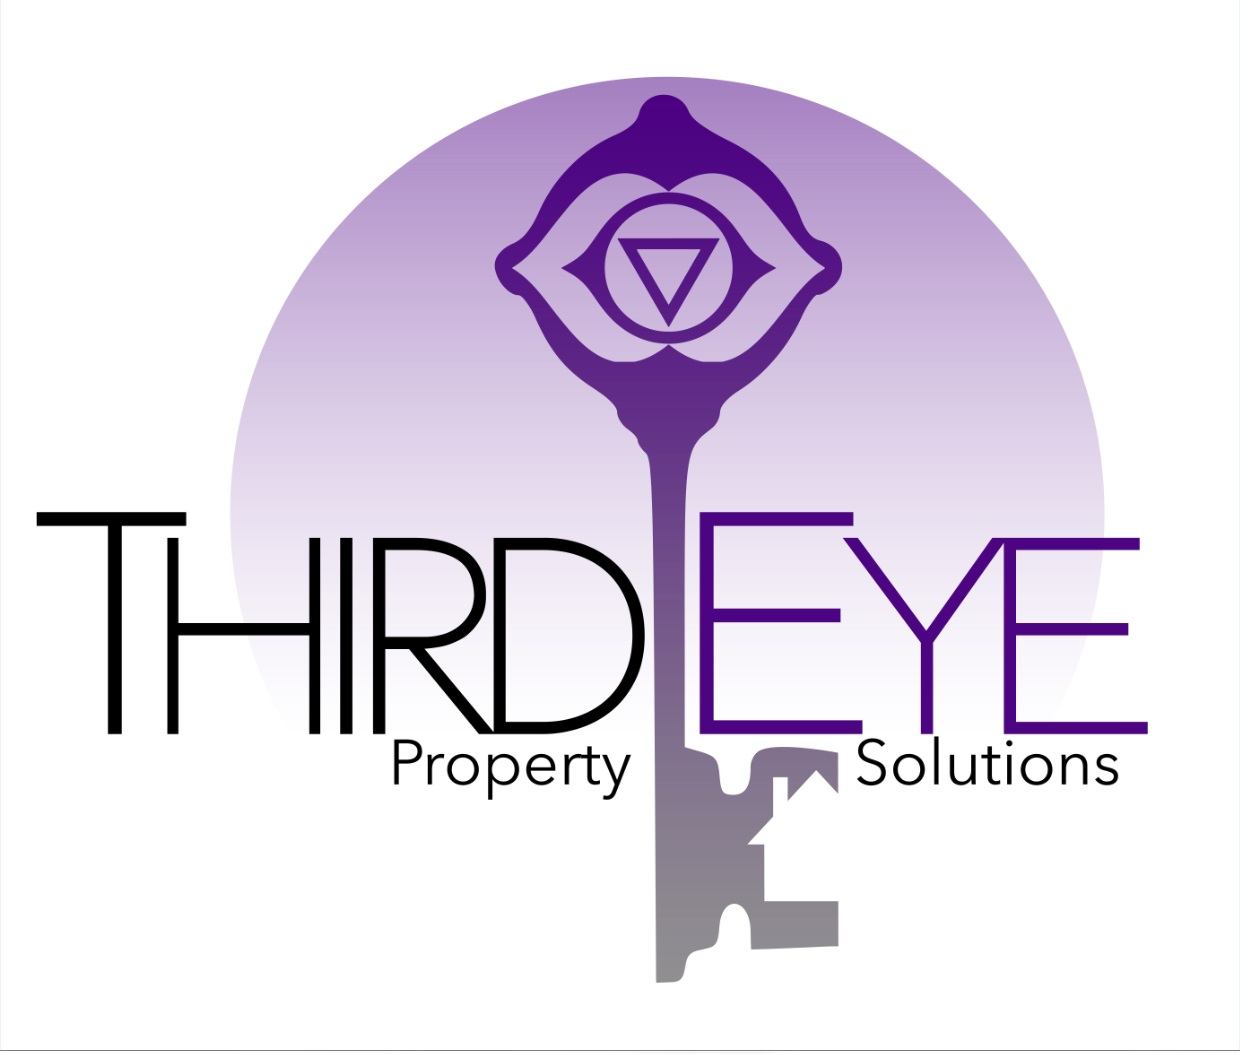 Exit Realty/Third Eye Property Solutions